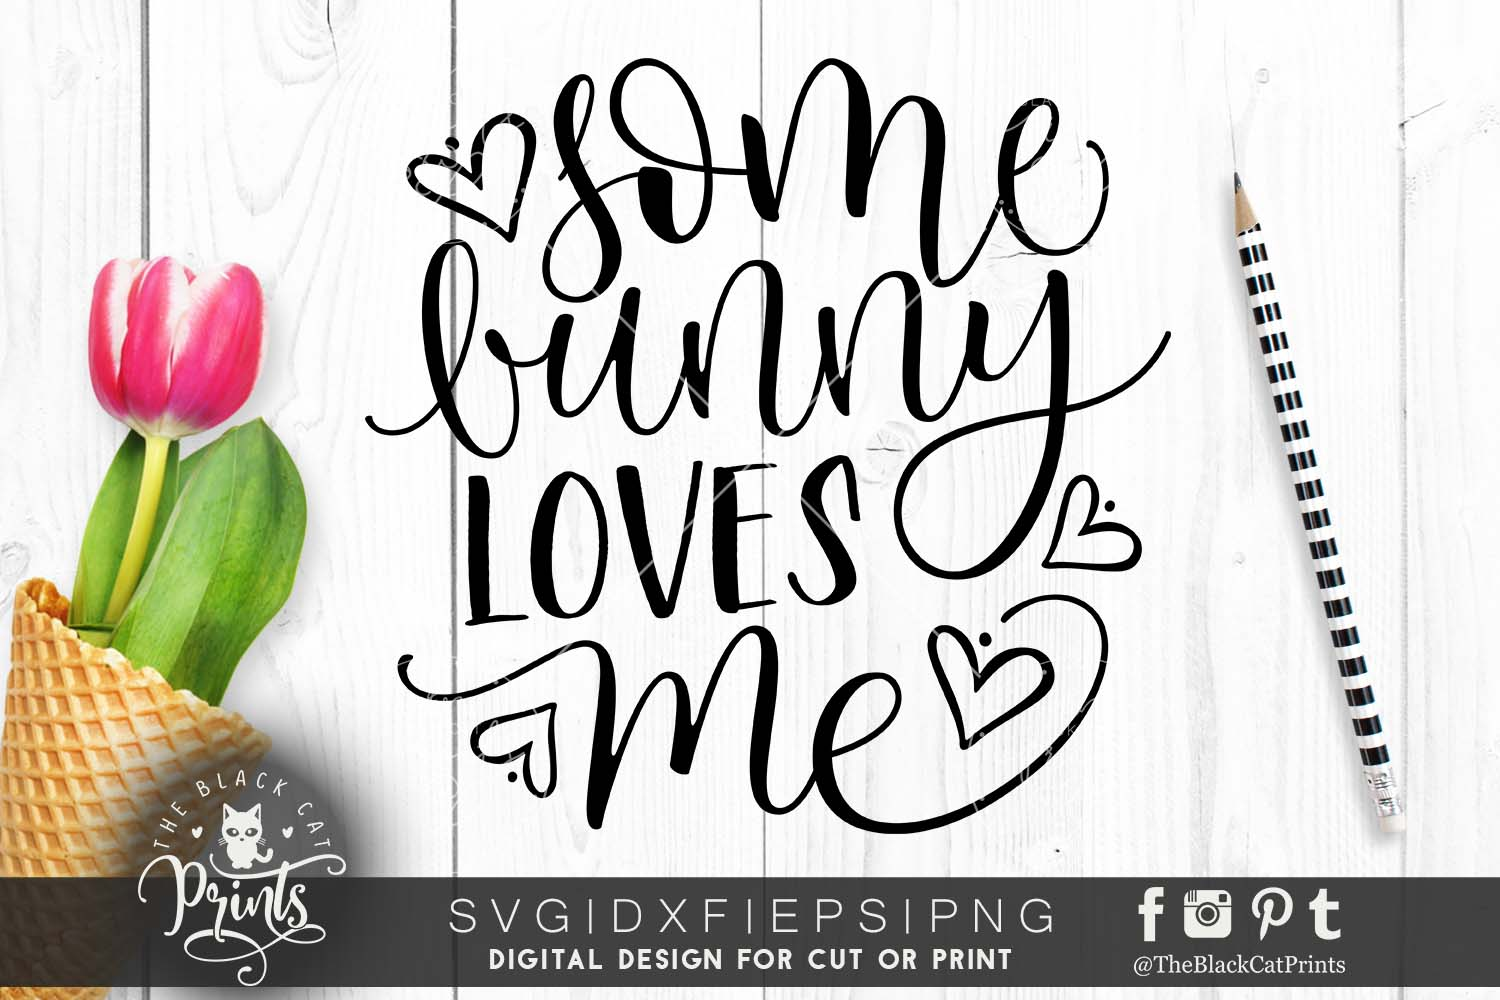 Some Bunny Loves Me Svg Dxf Png Eps Theblackcatprints